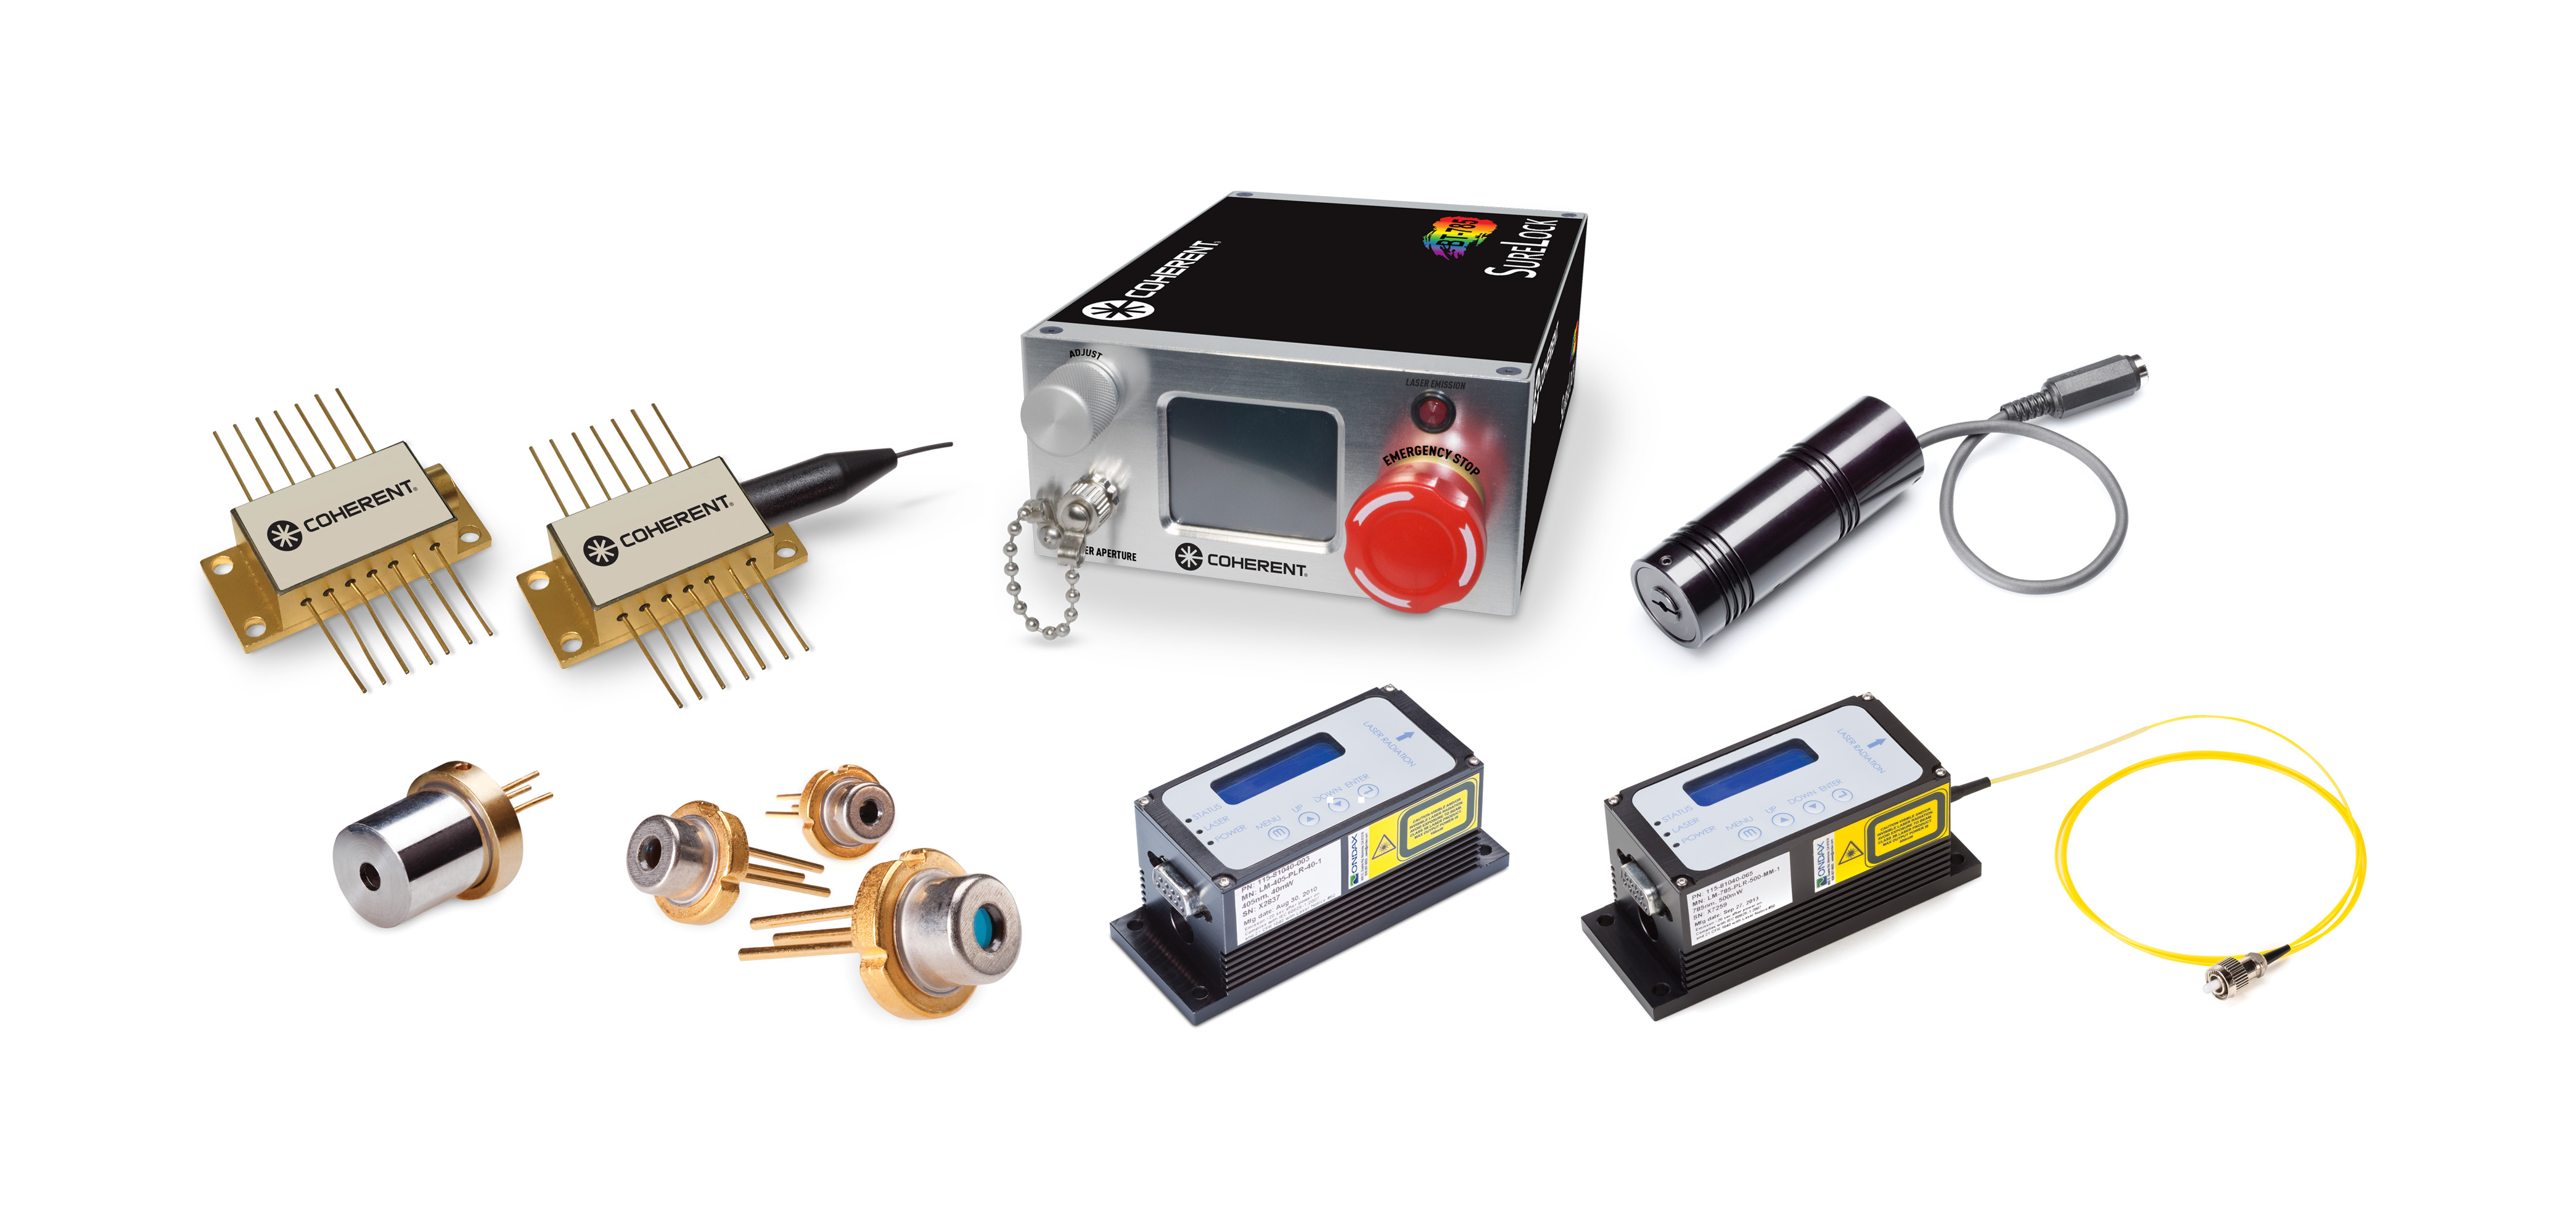 SureLock Wavelength Stabilized Diode Lasers